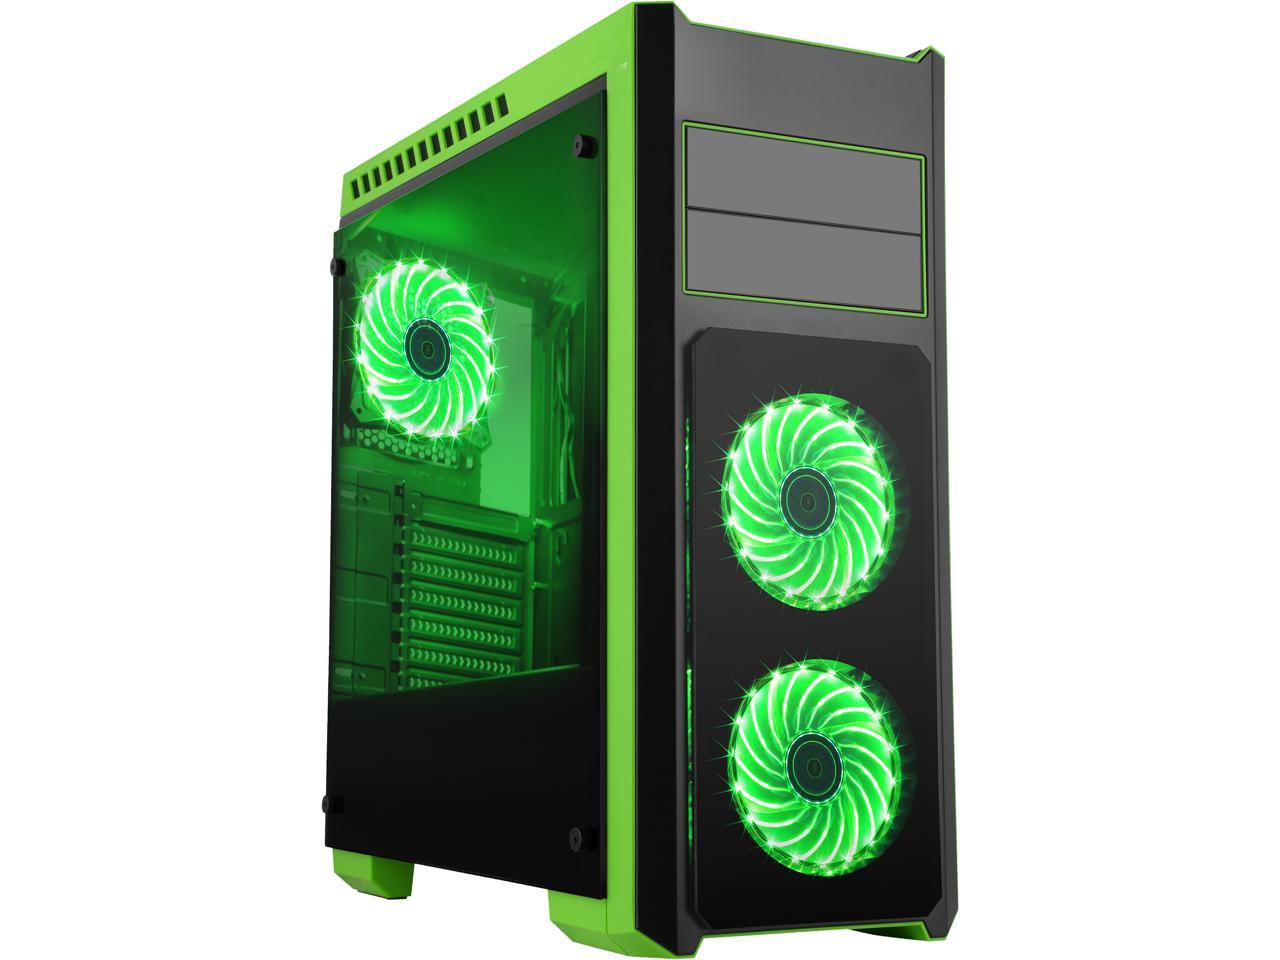 Diypc DIY-TG8-BG ATX Mid Tower Gaming Computer Case Chassis and USB 3.0 (Black / Green)